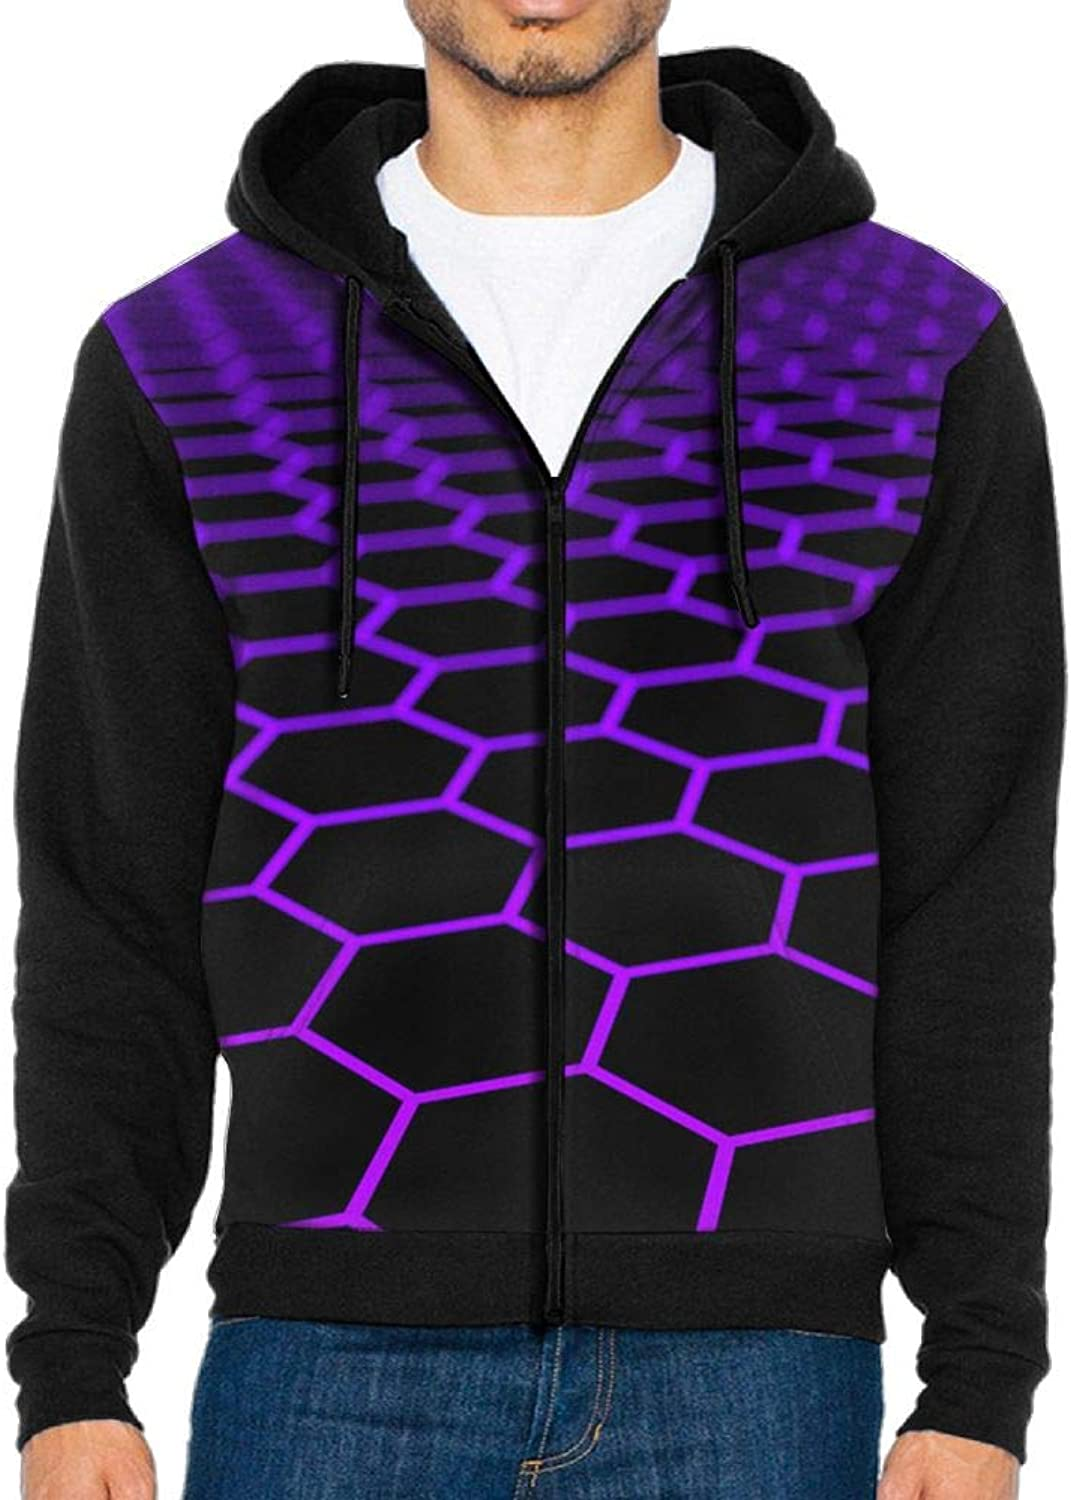 PIN Men's Purple Hexagon Hoodie Baseball Sweater